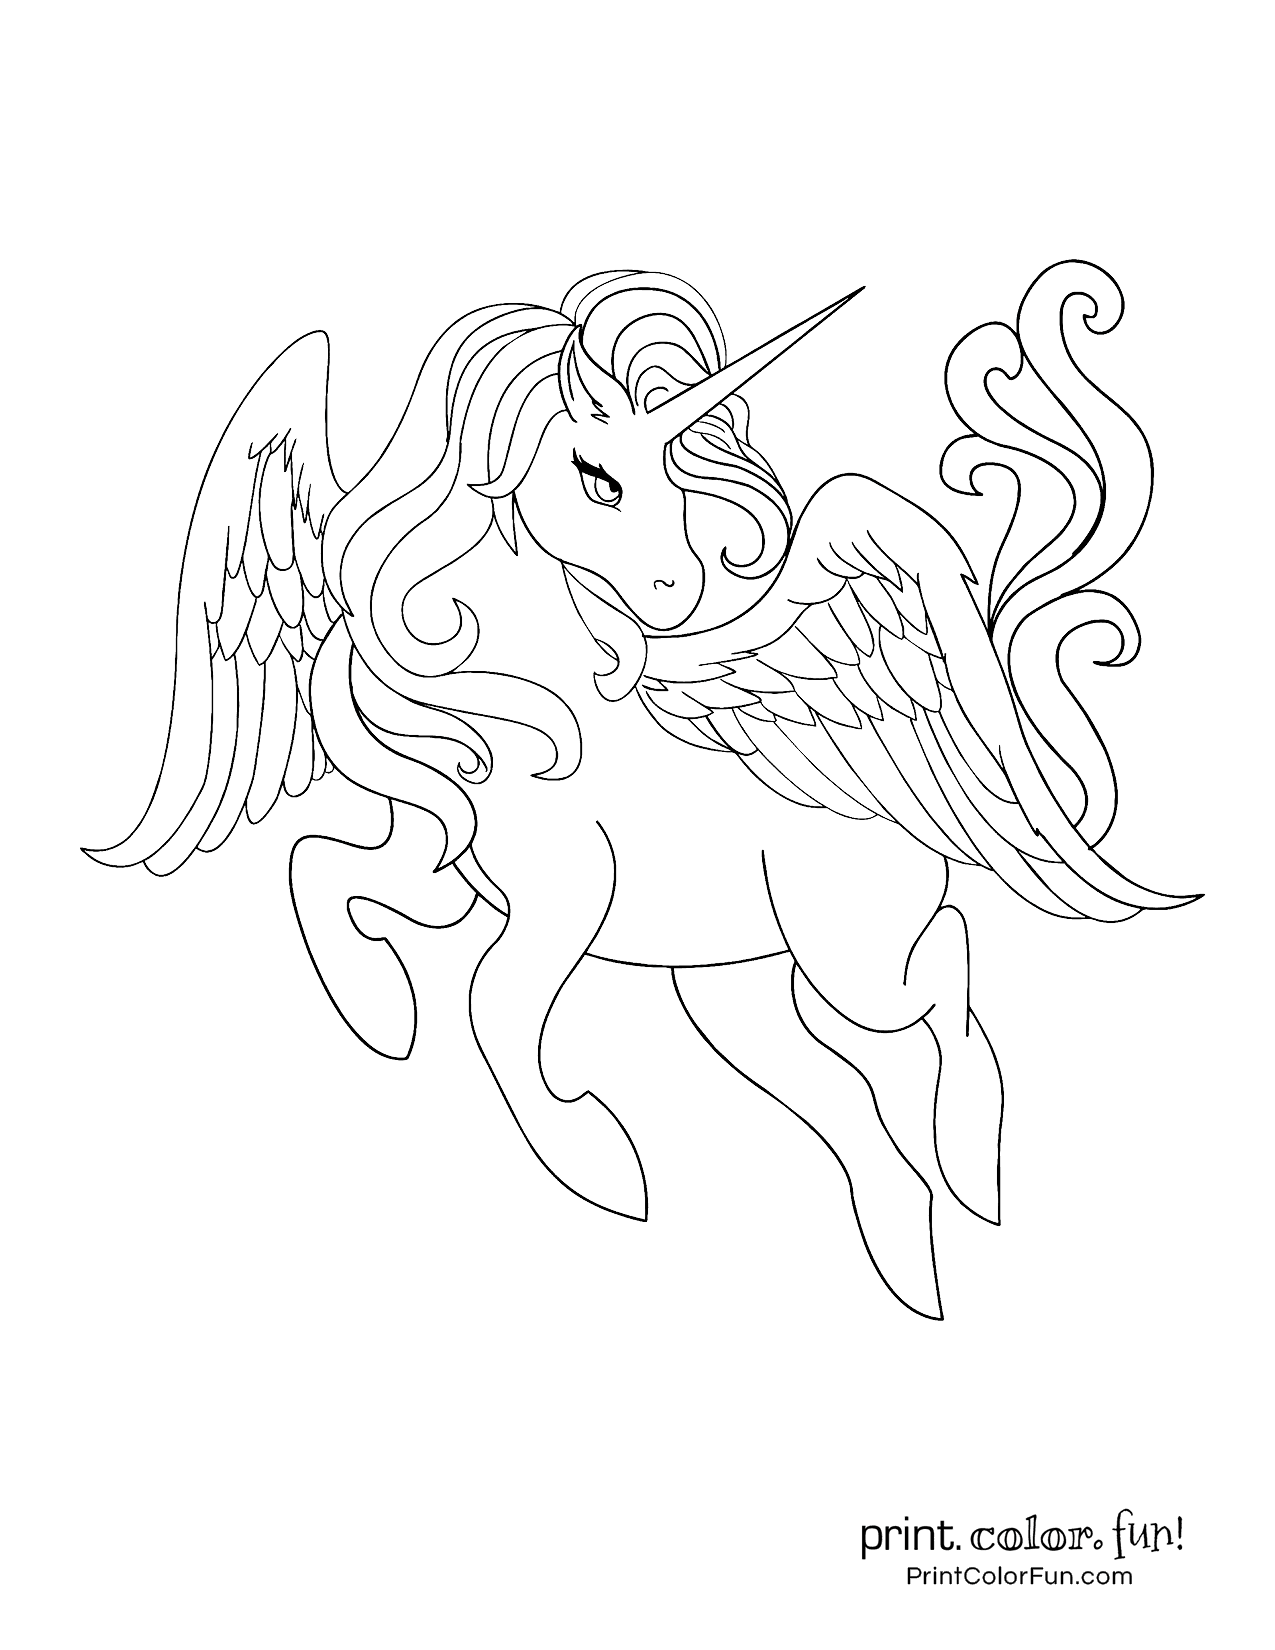 100 Magical Unicorn Coloring Pages The Ultimate Free Printable Collection At Print Color Fun Com Unicorn Coloring Pages Coloring Pages Unicorn Drawing [ 1650 x 1275 Pixel ]